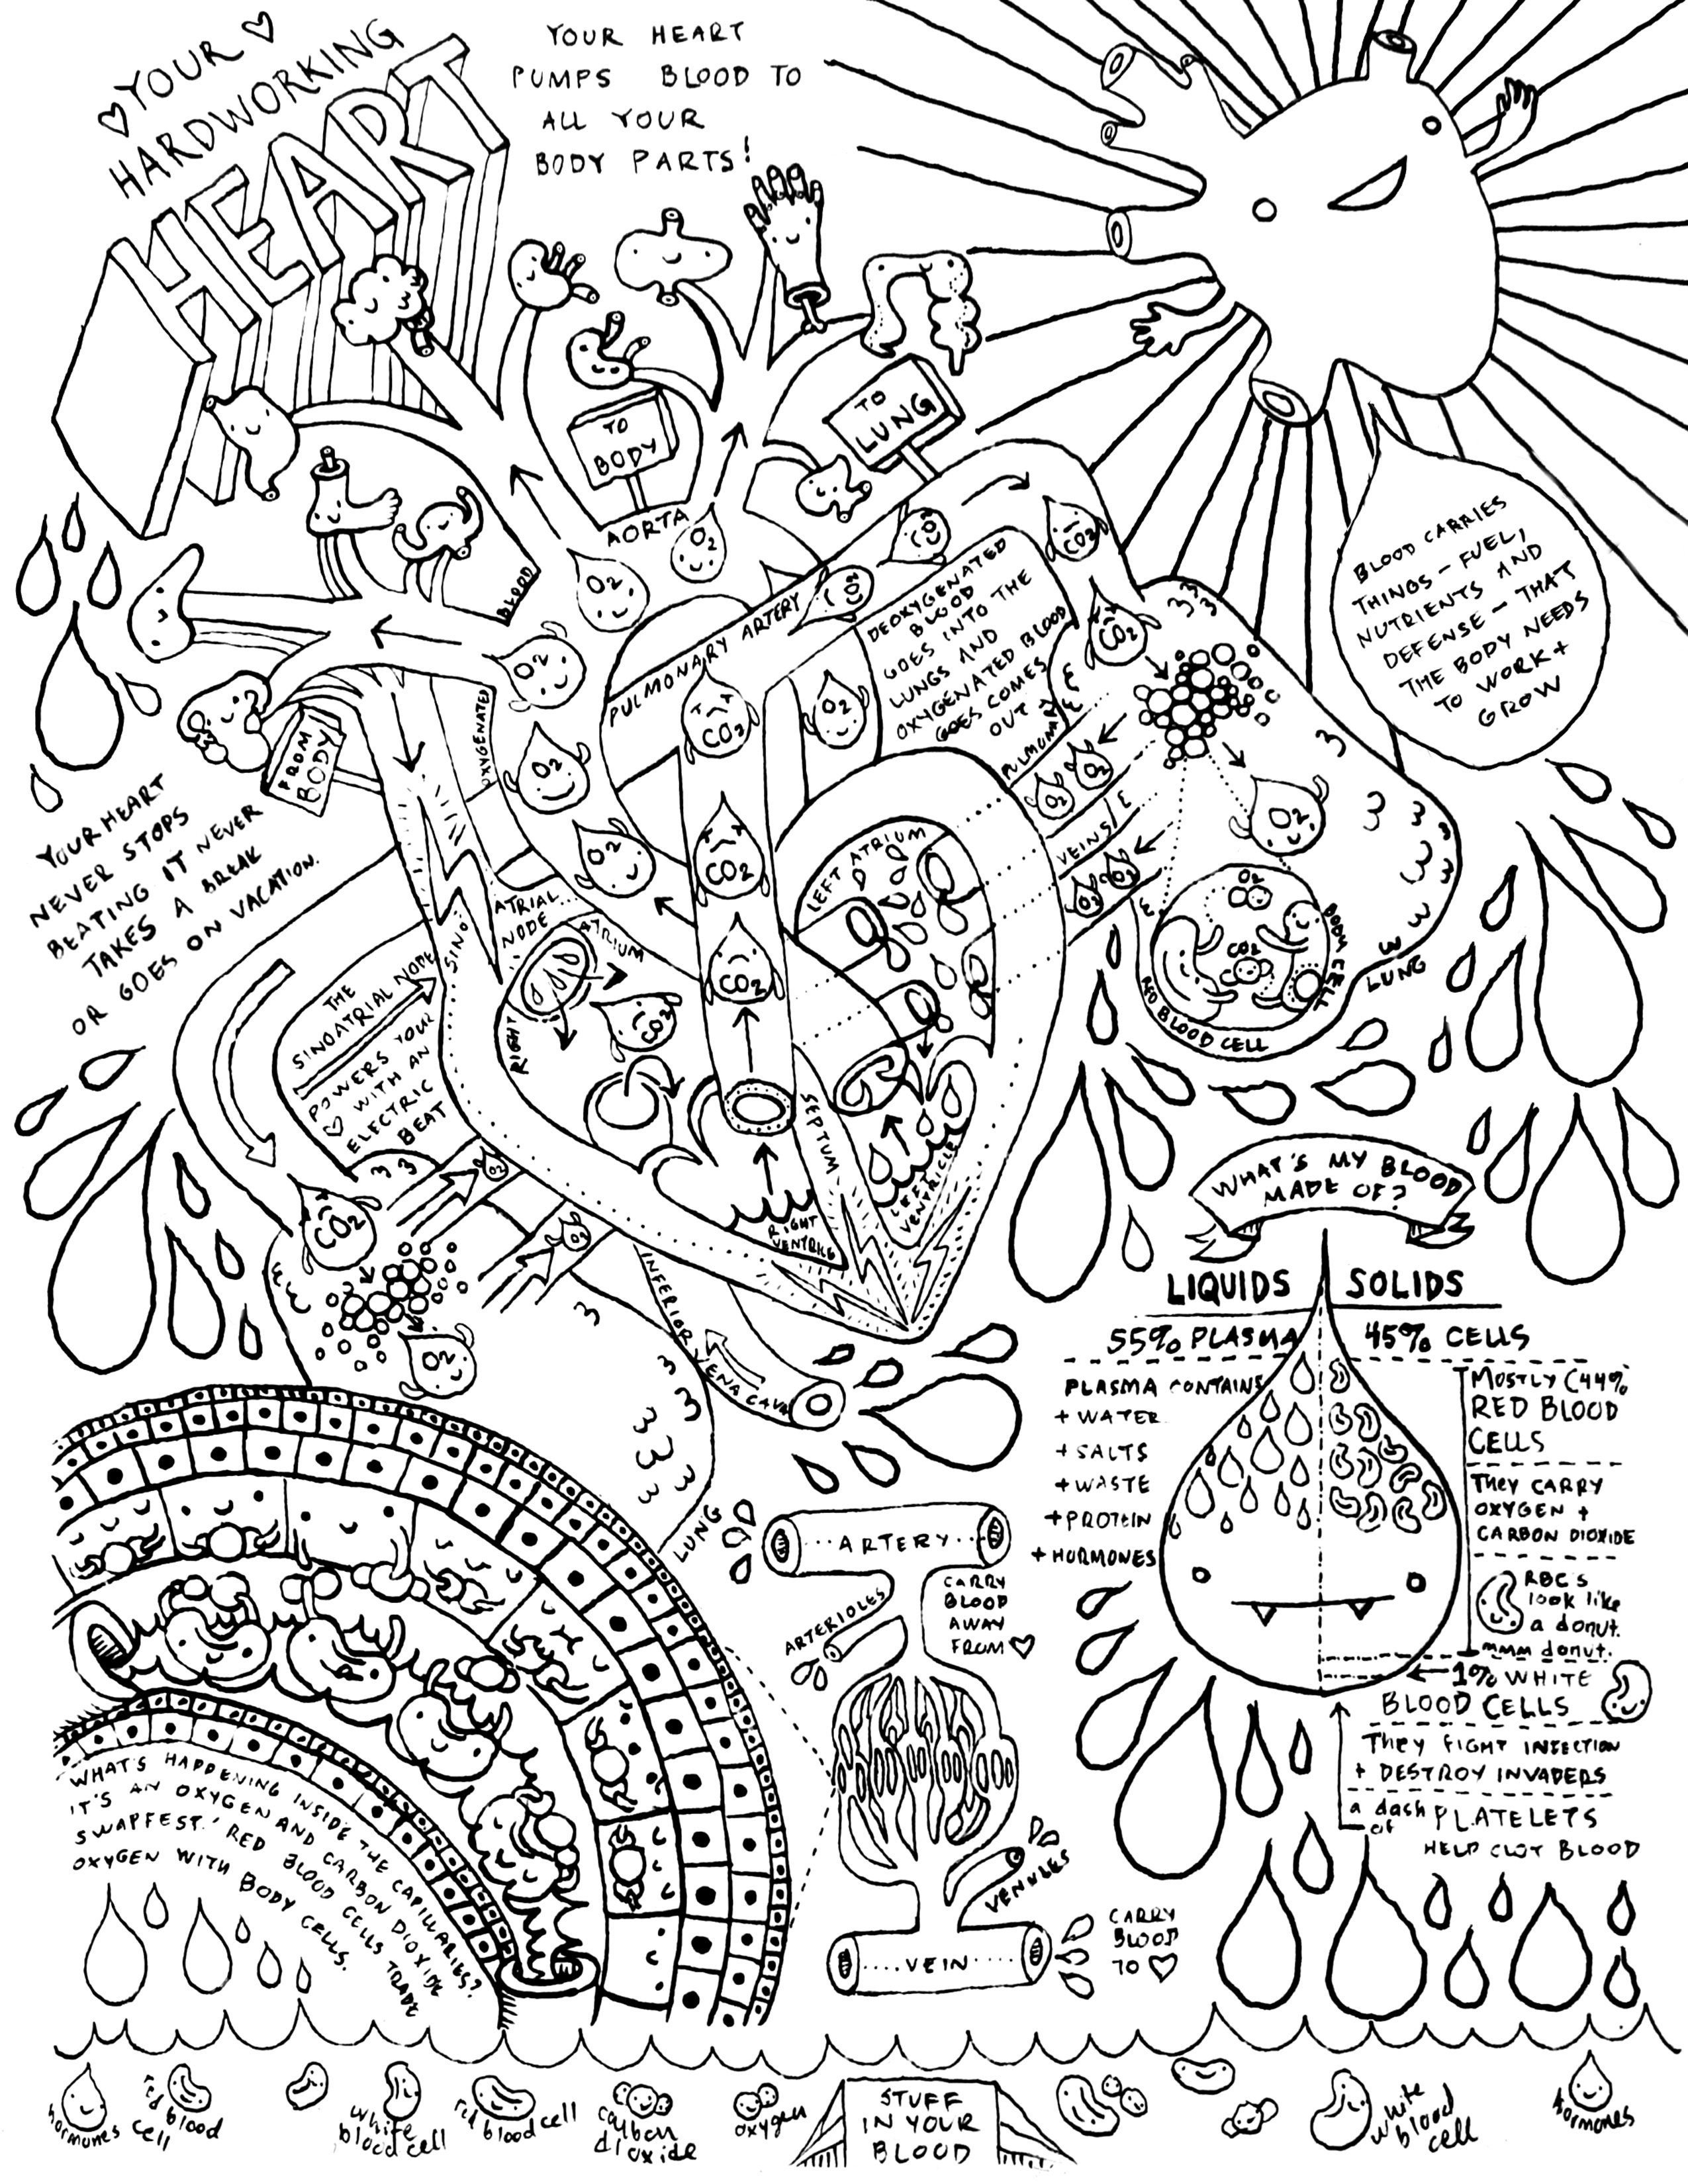 Heart And Circulatory System Coloring Page Anatomy Coloring Book